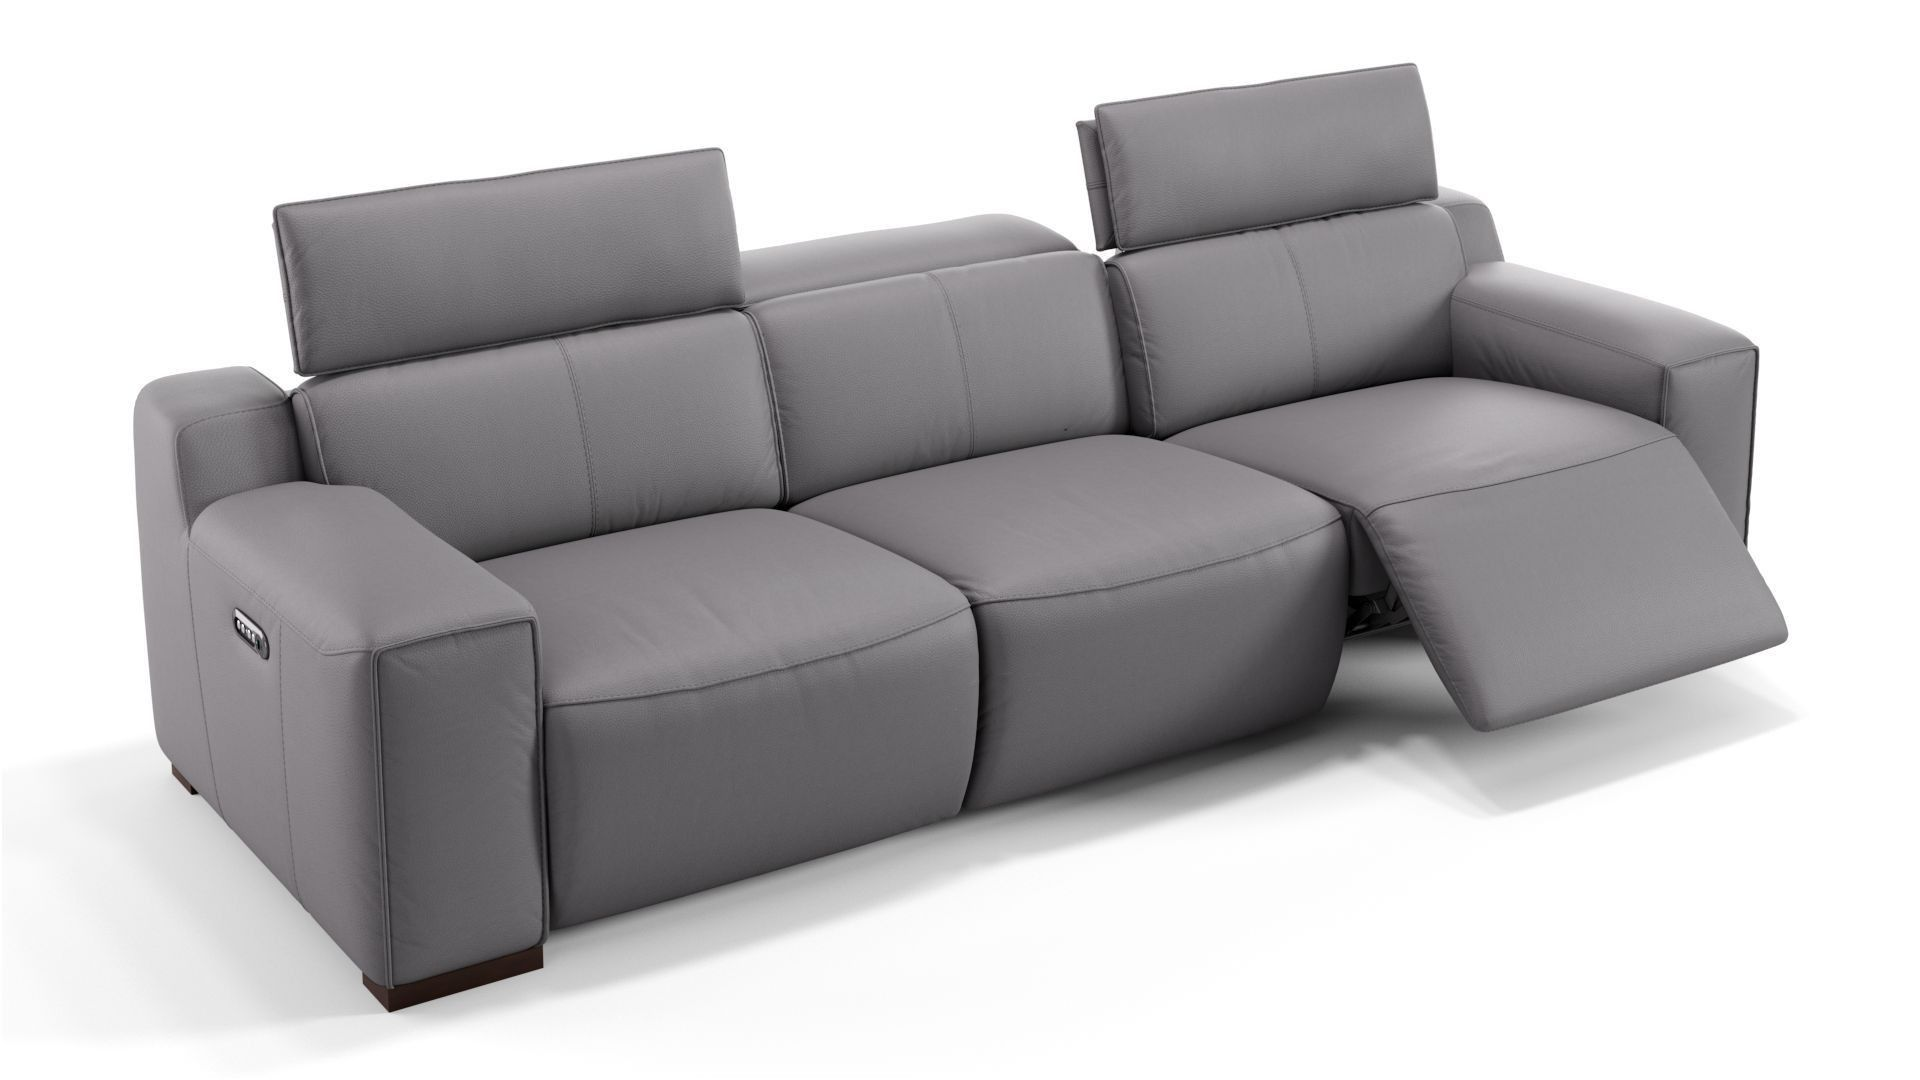 Simplistic Couch Xxl Sofa Couch Home Decor